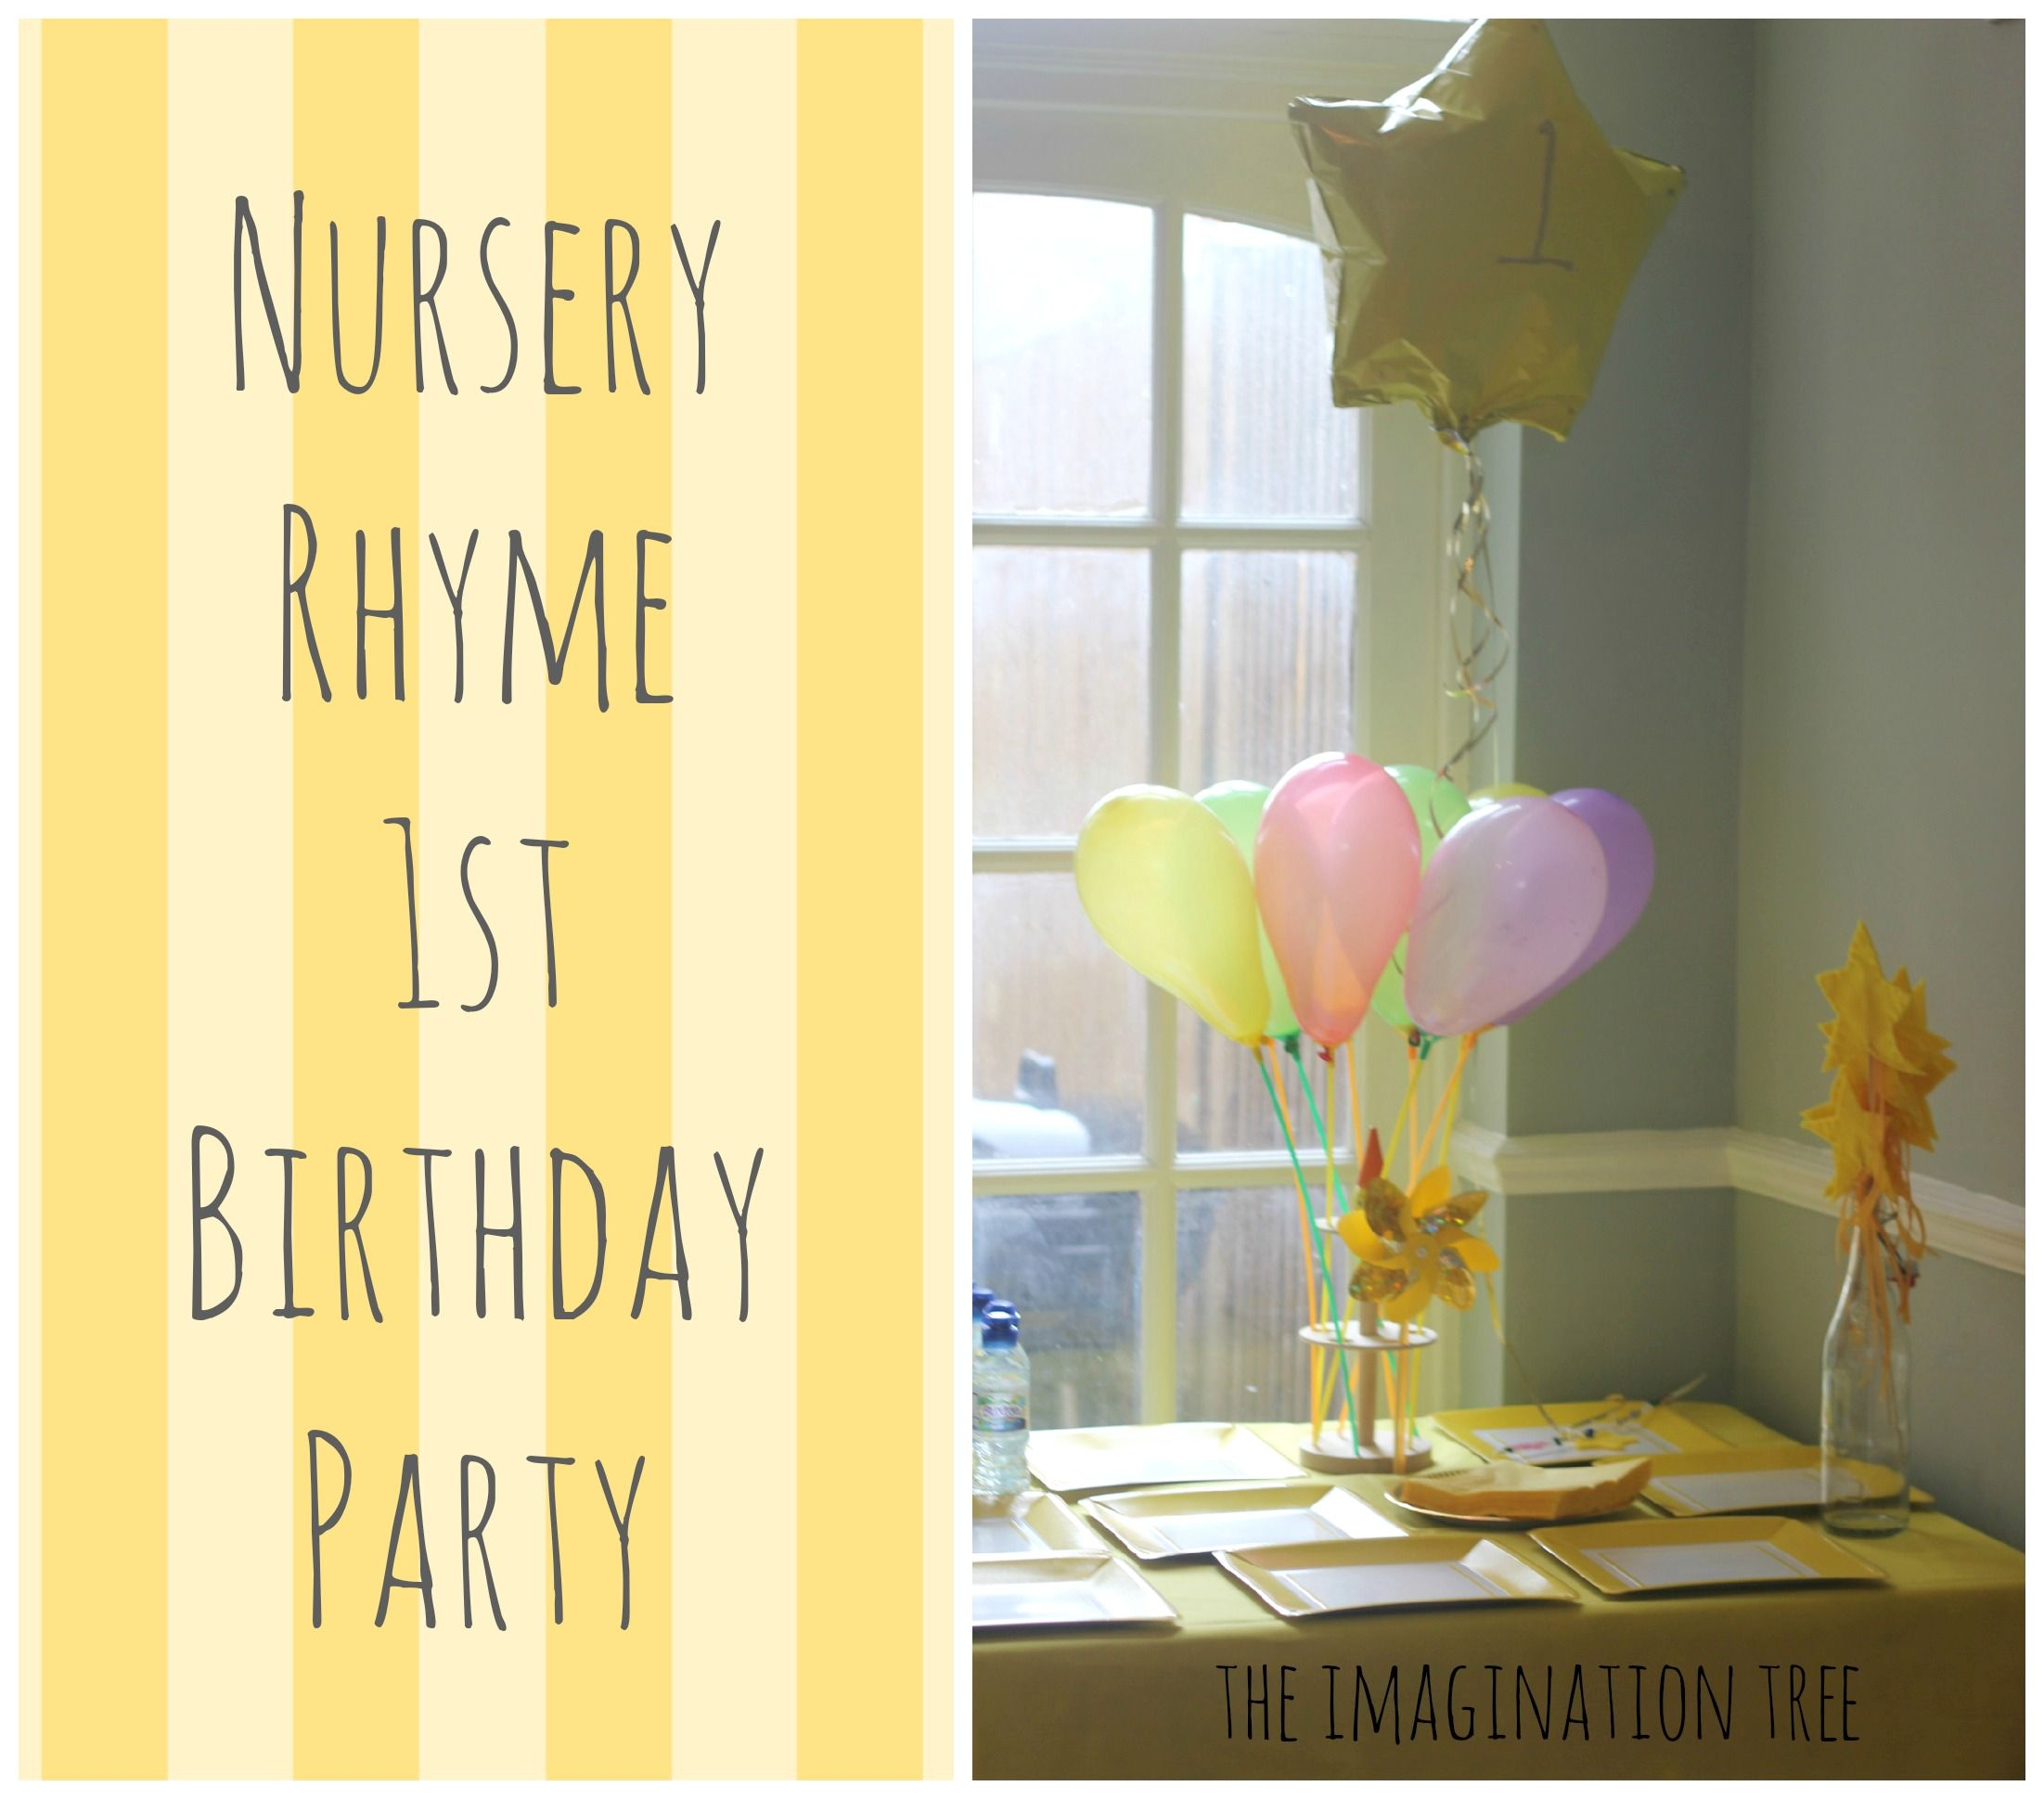 Baby Children Nursery Rhyme Song Nursery Rhyme Party For Baby 39s 1st Birthday Birthday